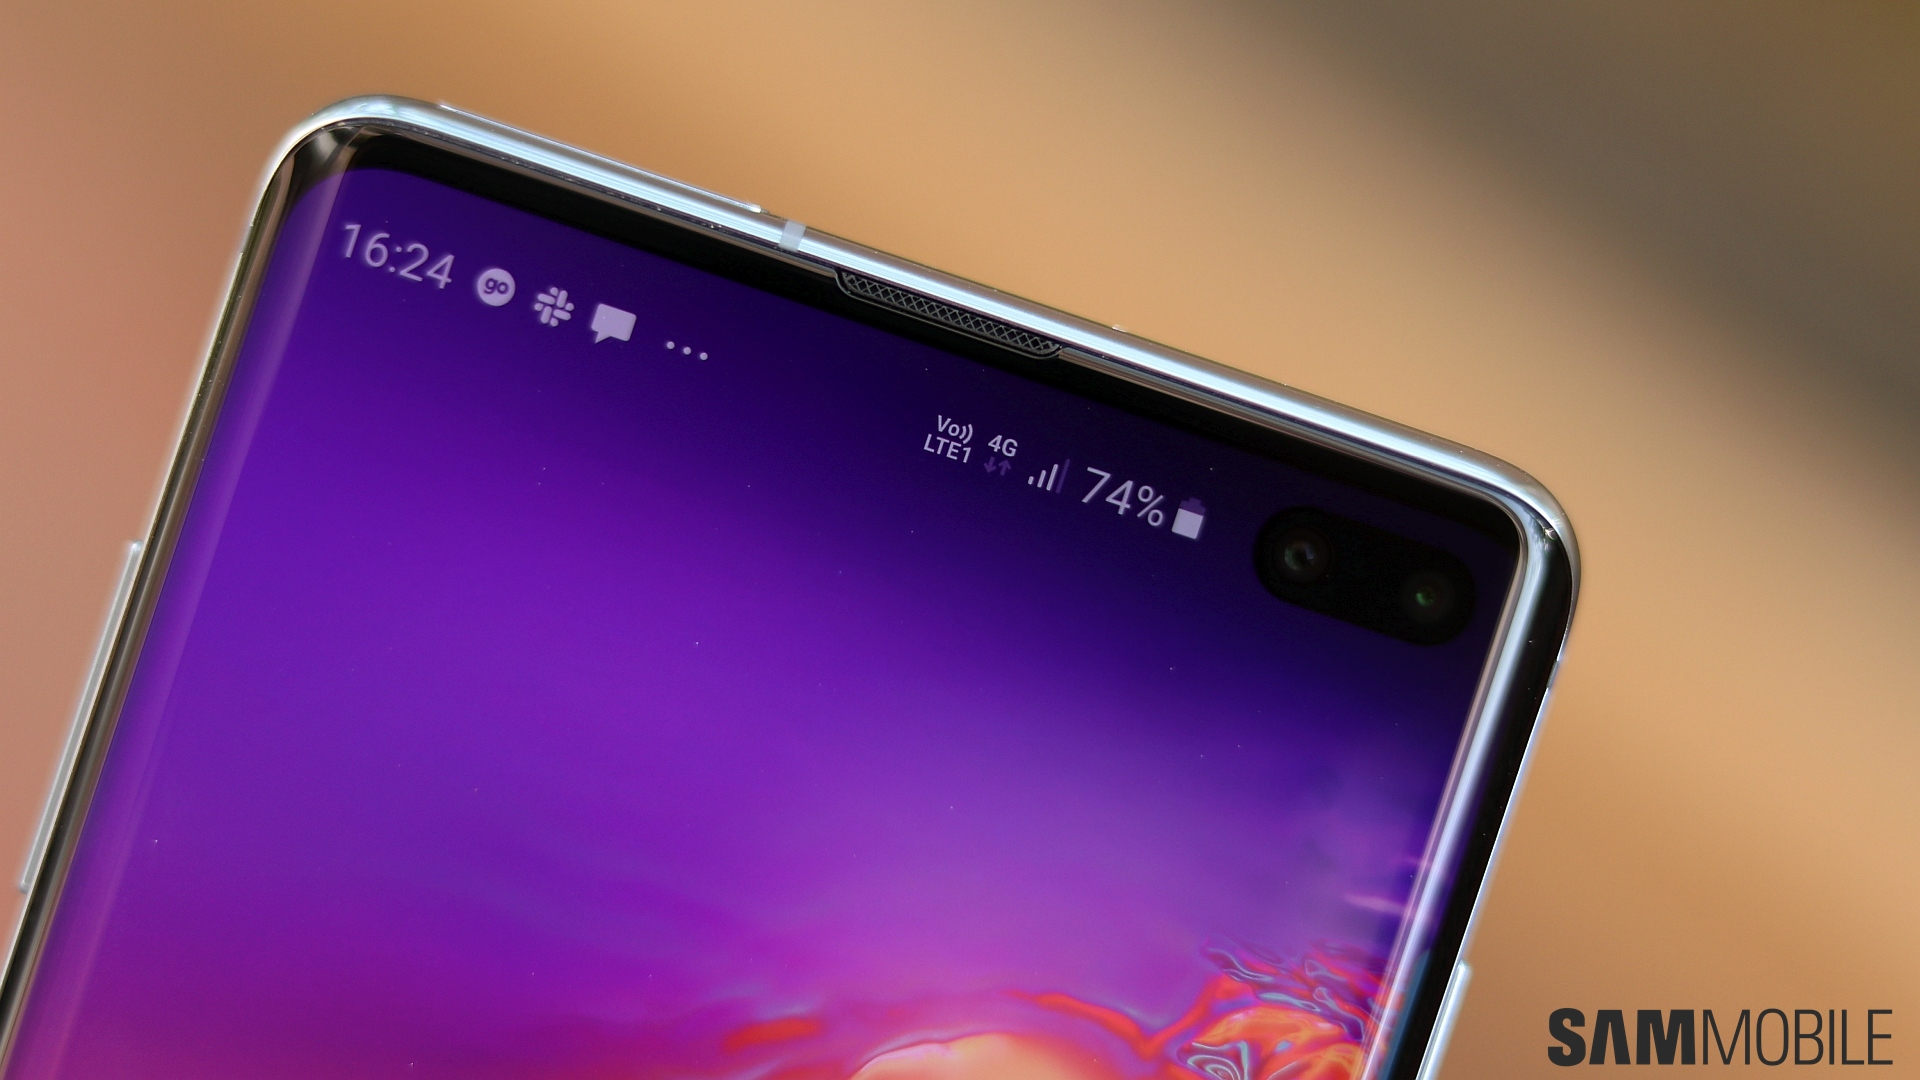 Galaxy S10 has a frustrating bug that's killing battery life